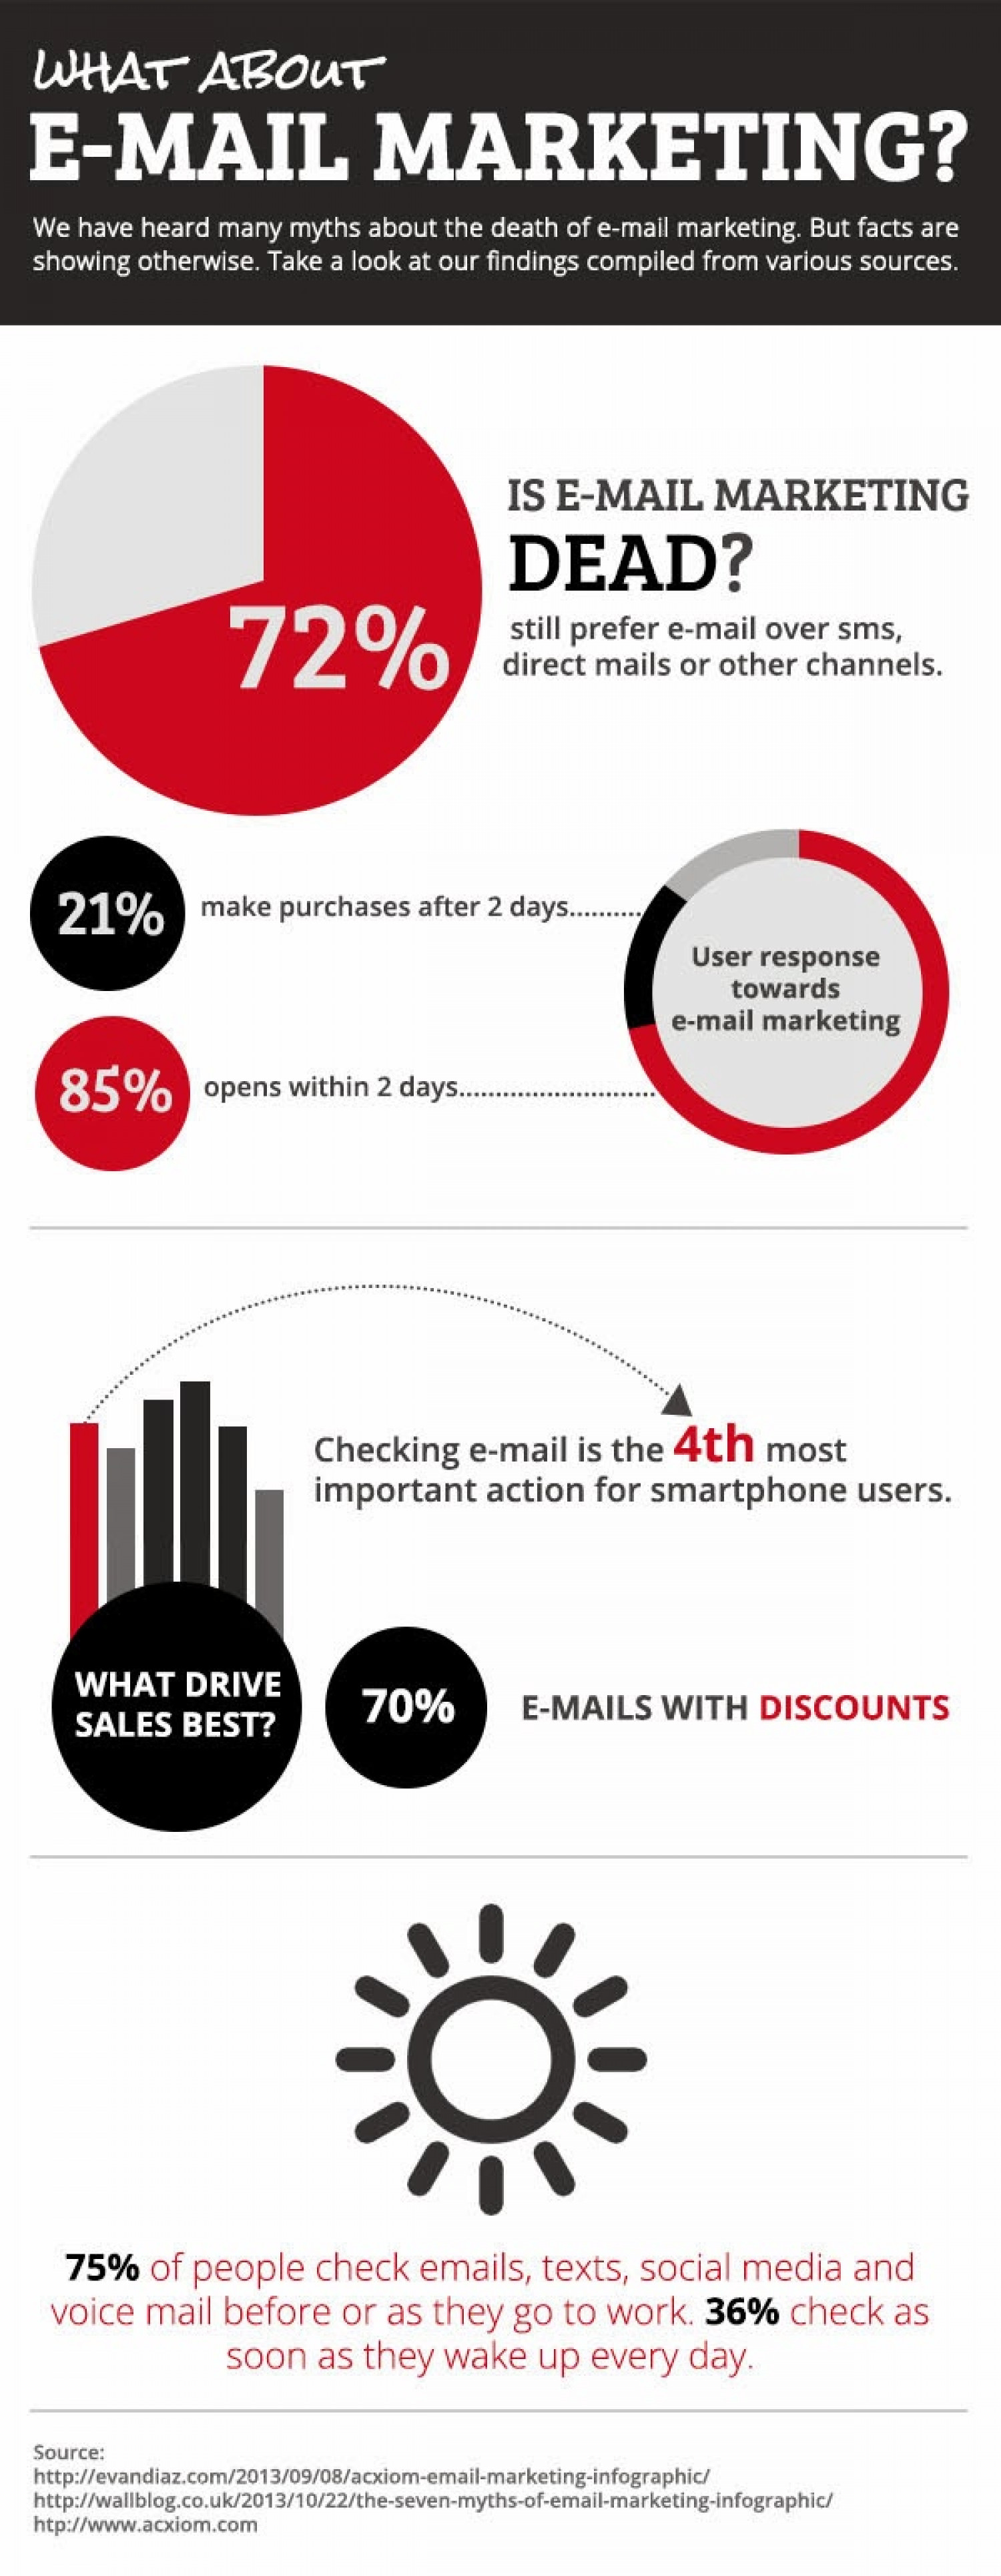 What About E-Mail Marketing? Infographic